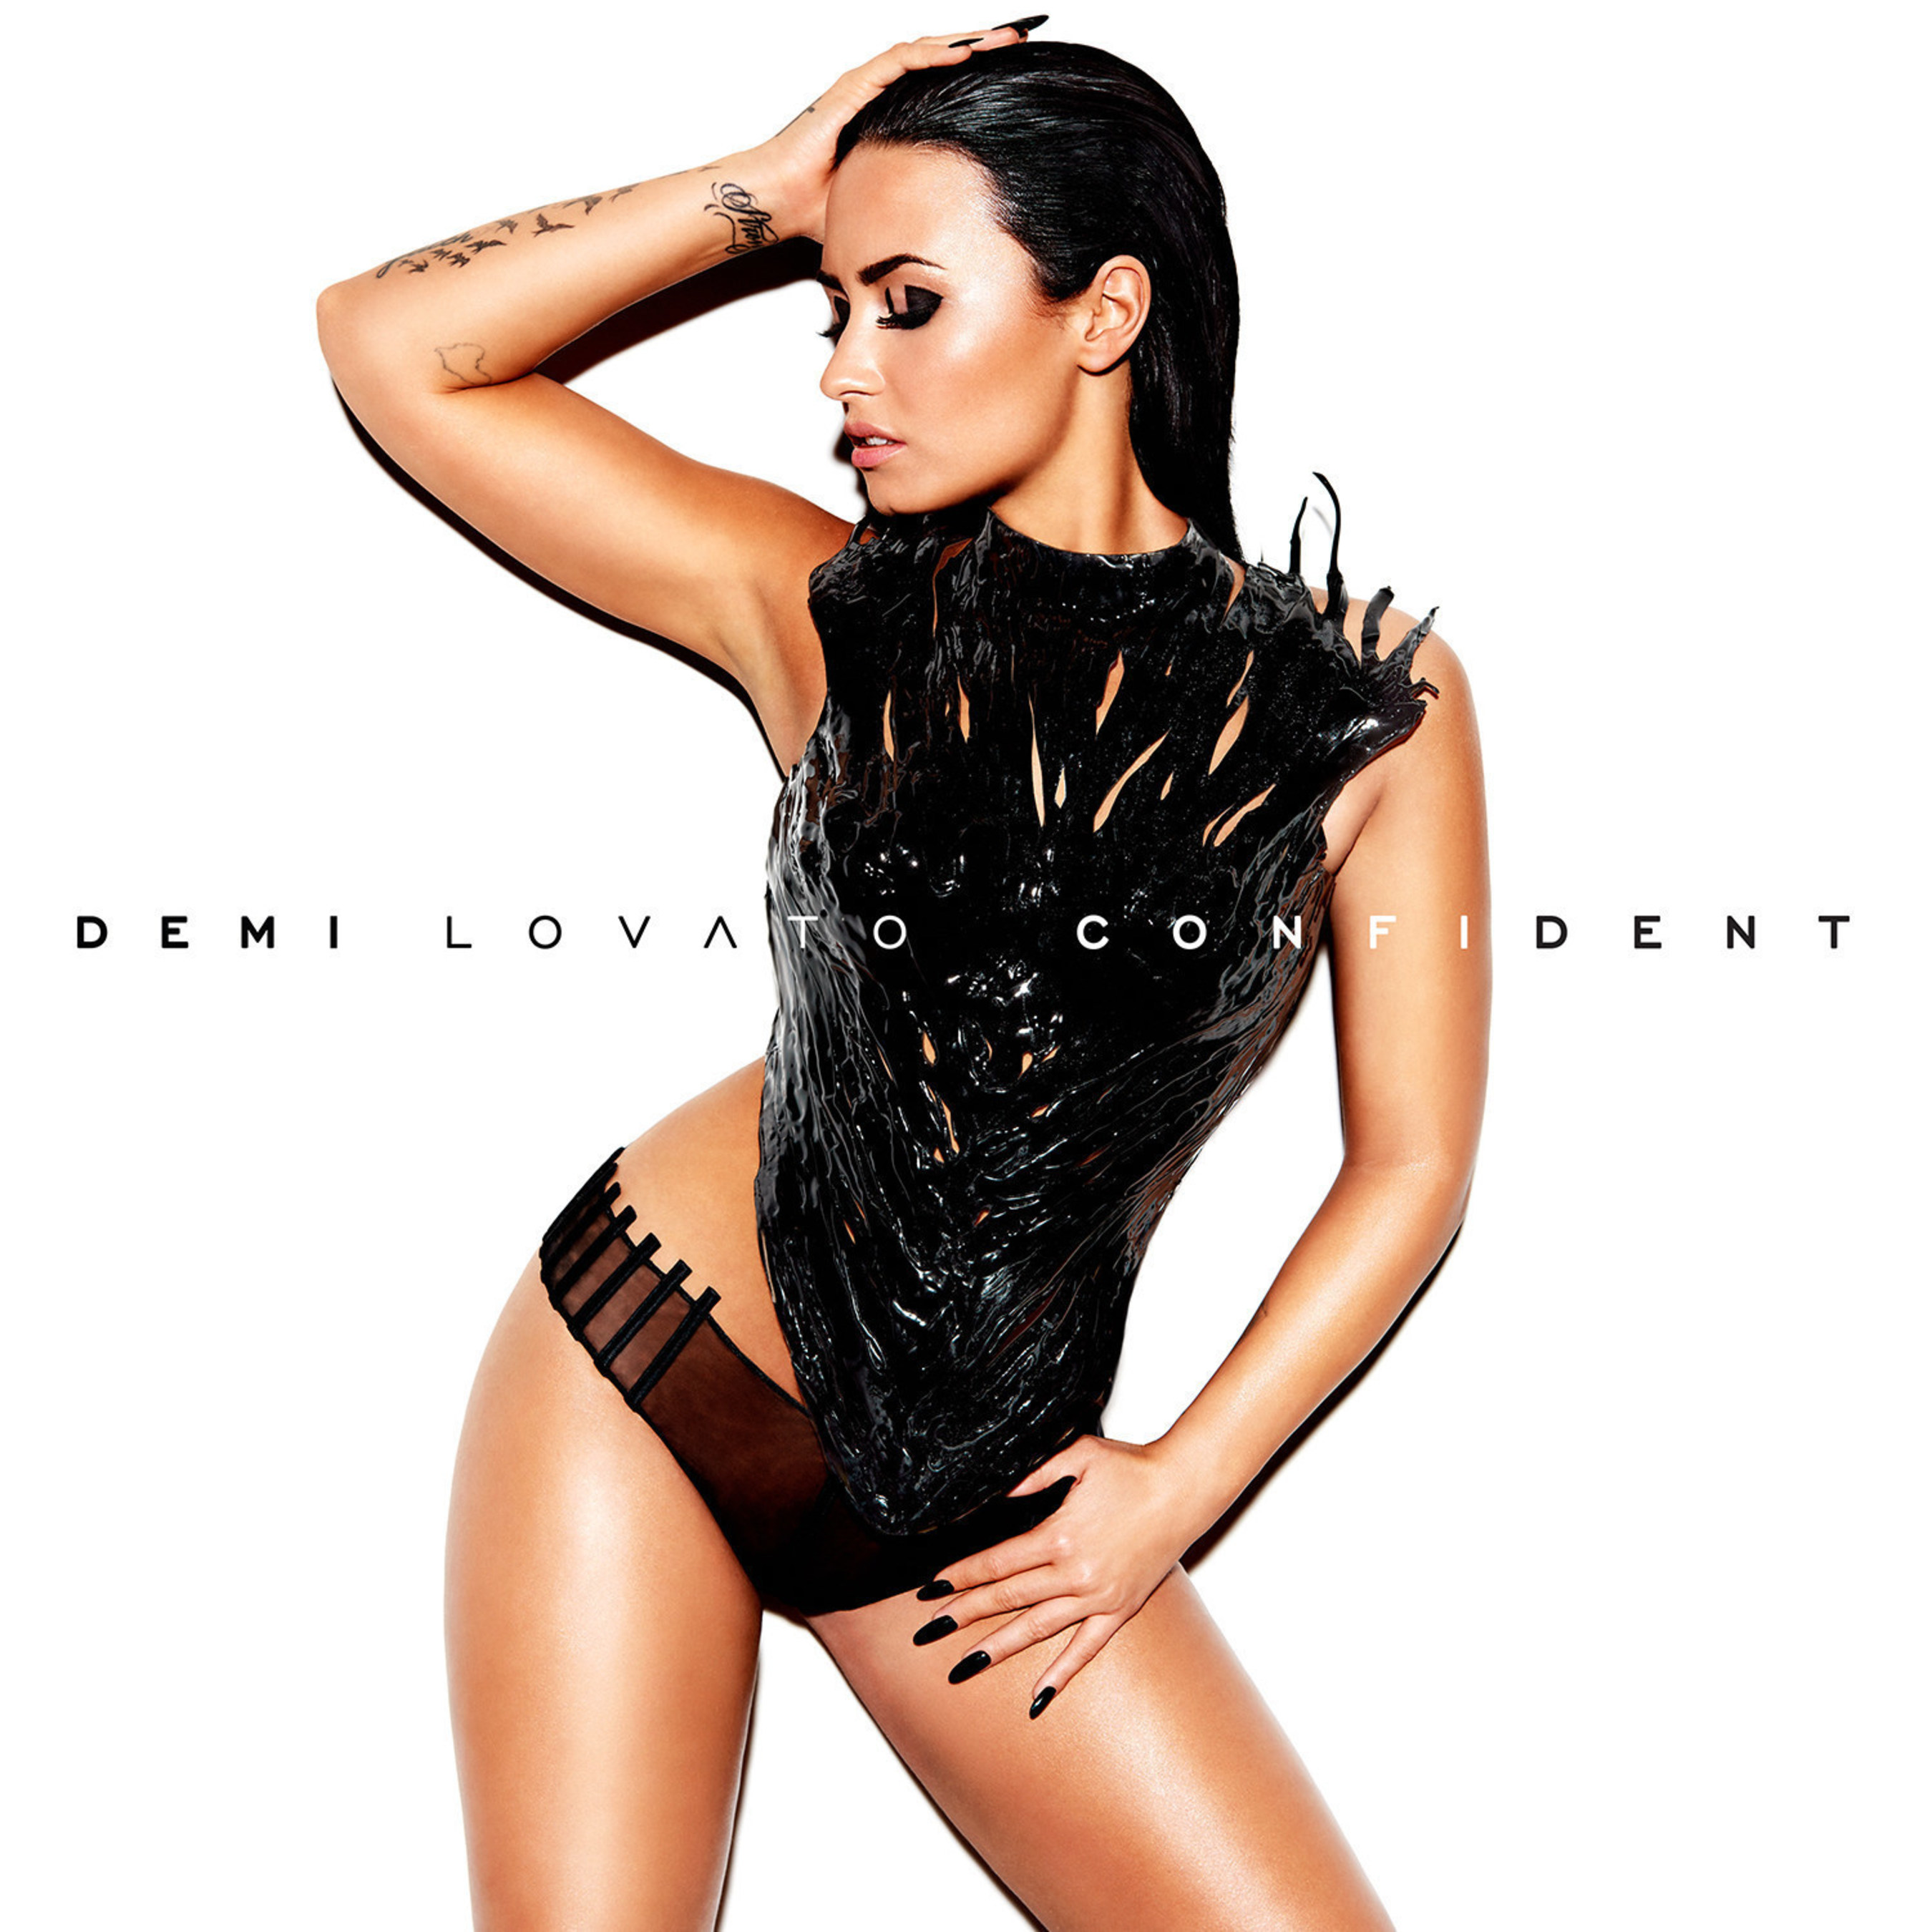 Demi Lovato To Release Fifth Studio Album 'CONFIDENT' Worldwide On October 16th Via Hollywood Records/Island Records/Safehouse Records